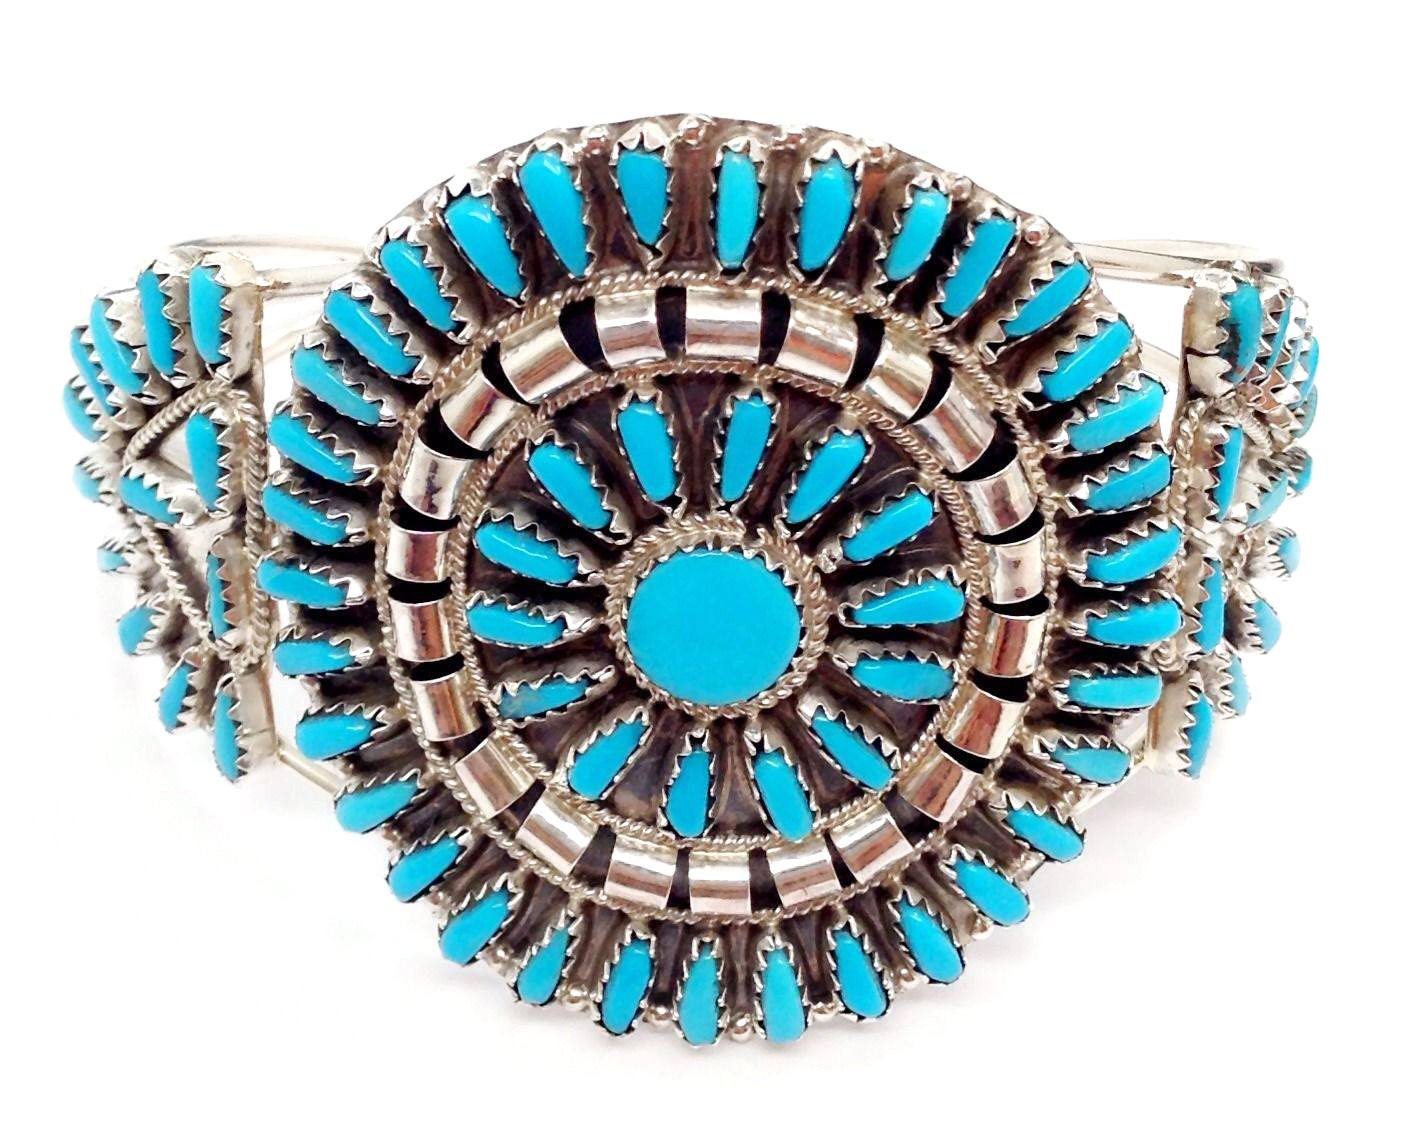 ZUNI STYLE TURQUOISE & STERLING SILVER BRACELET - NAVAJO MADE